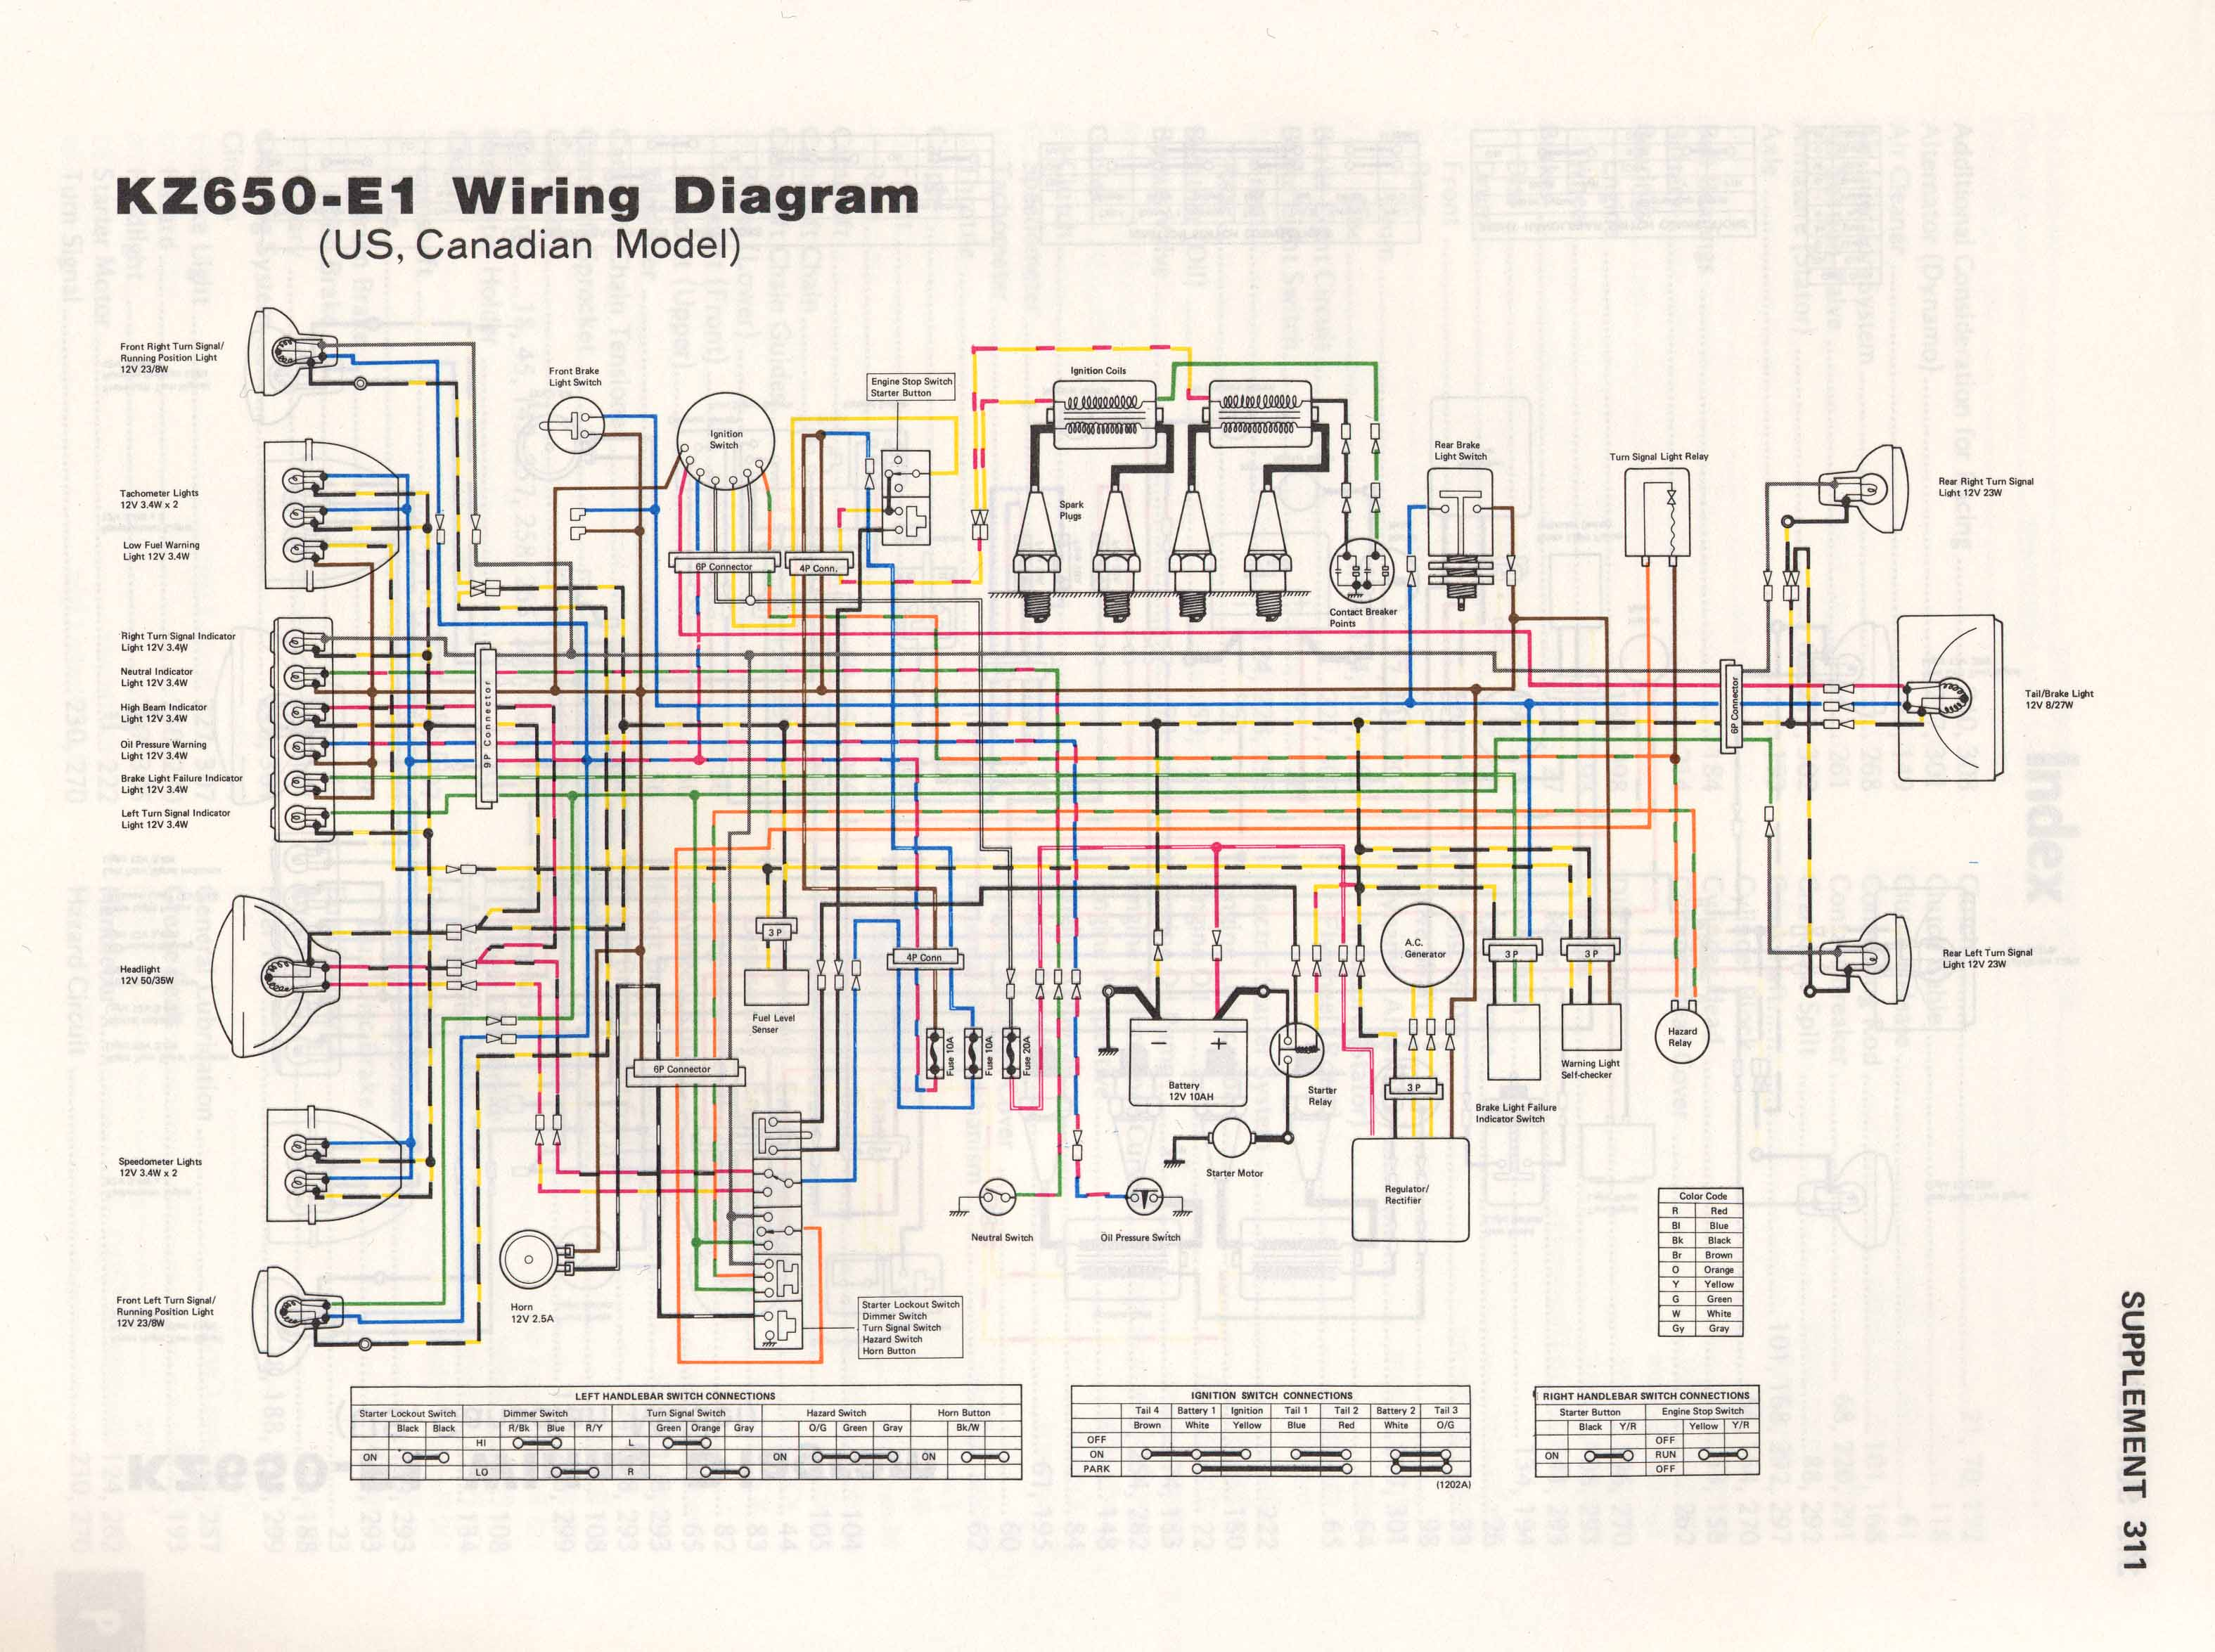 Kz200 Wiring Diagram List Of Schematic Circuit Daihatsu L7 Kz650 Info Diagrams Rh Kawasaki